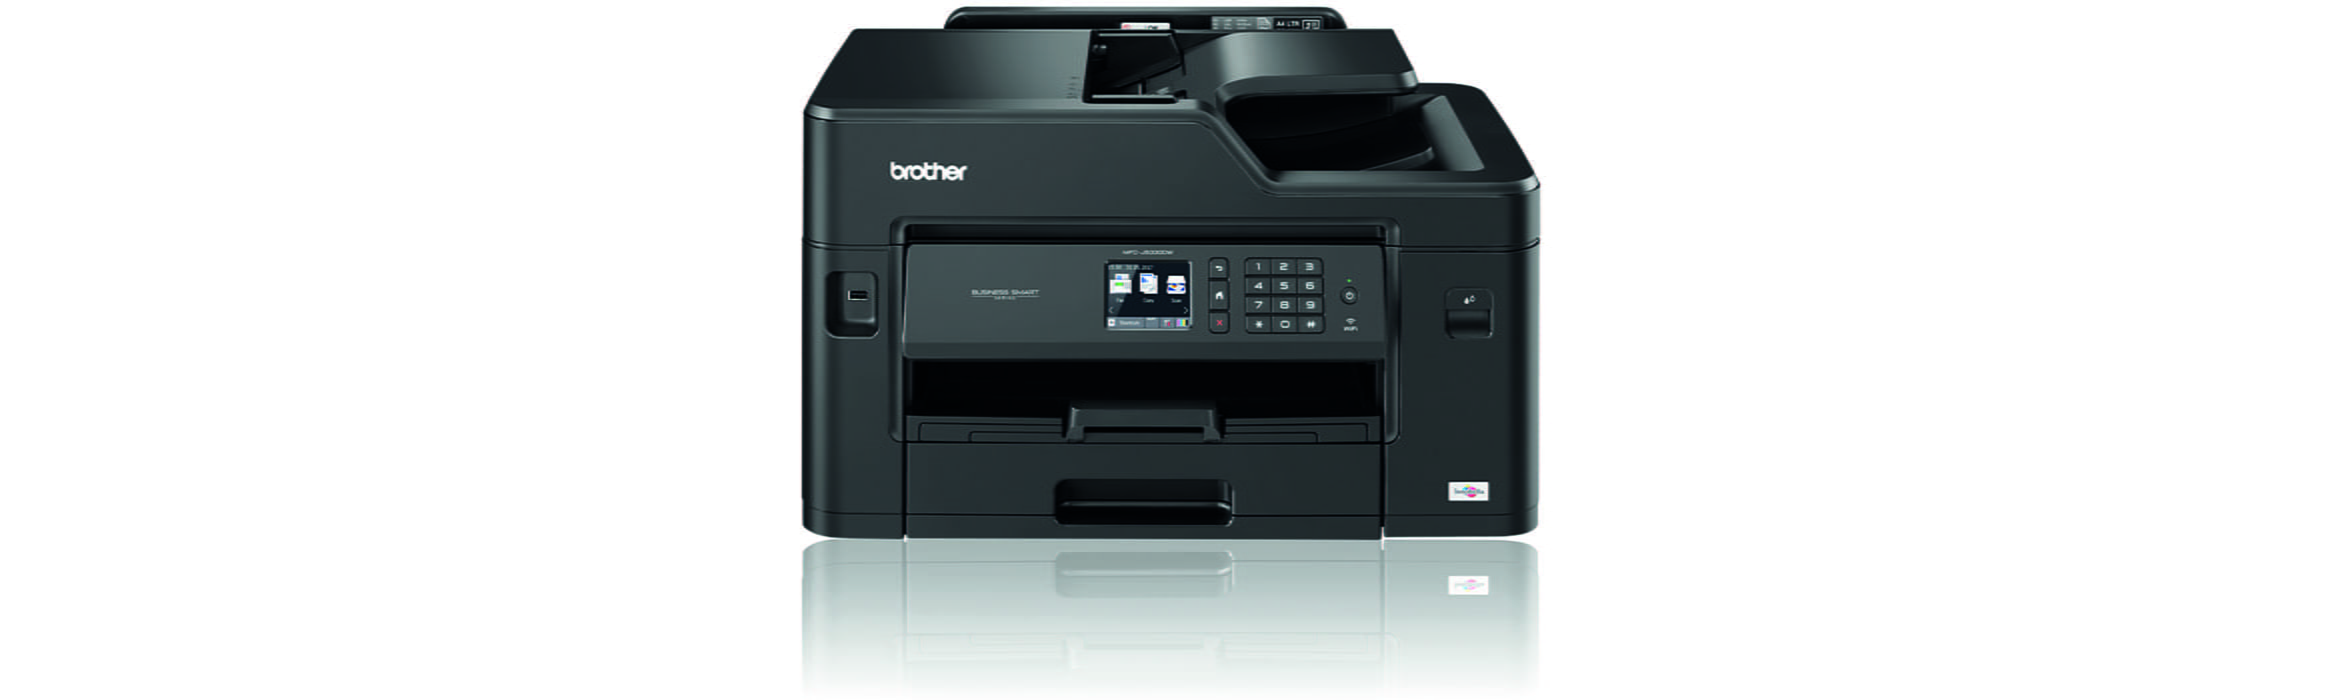 Brother MFC-J5330 business smart printer